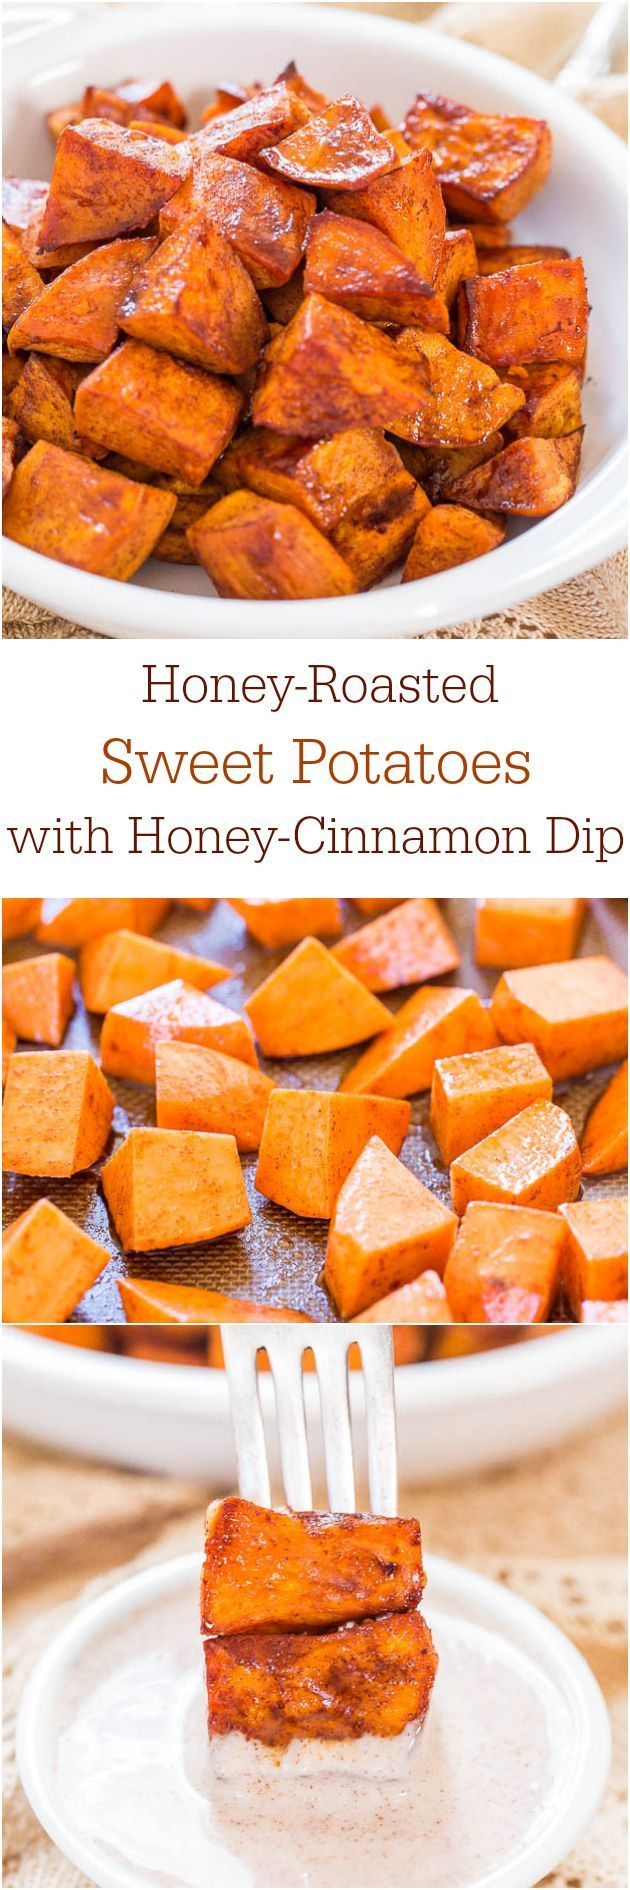 Honey-Roasted Sweet Potatoes with Honey-Cinnamon Dip - The honey glaze and the…